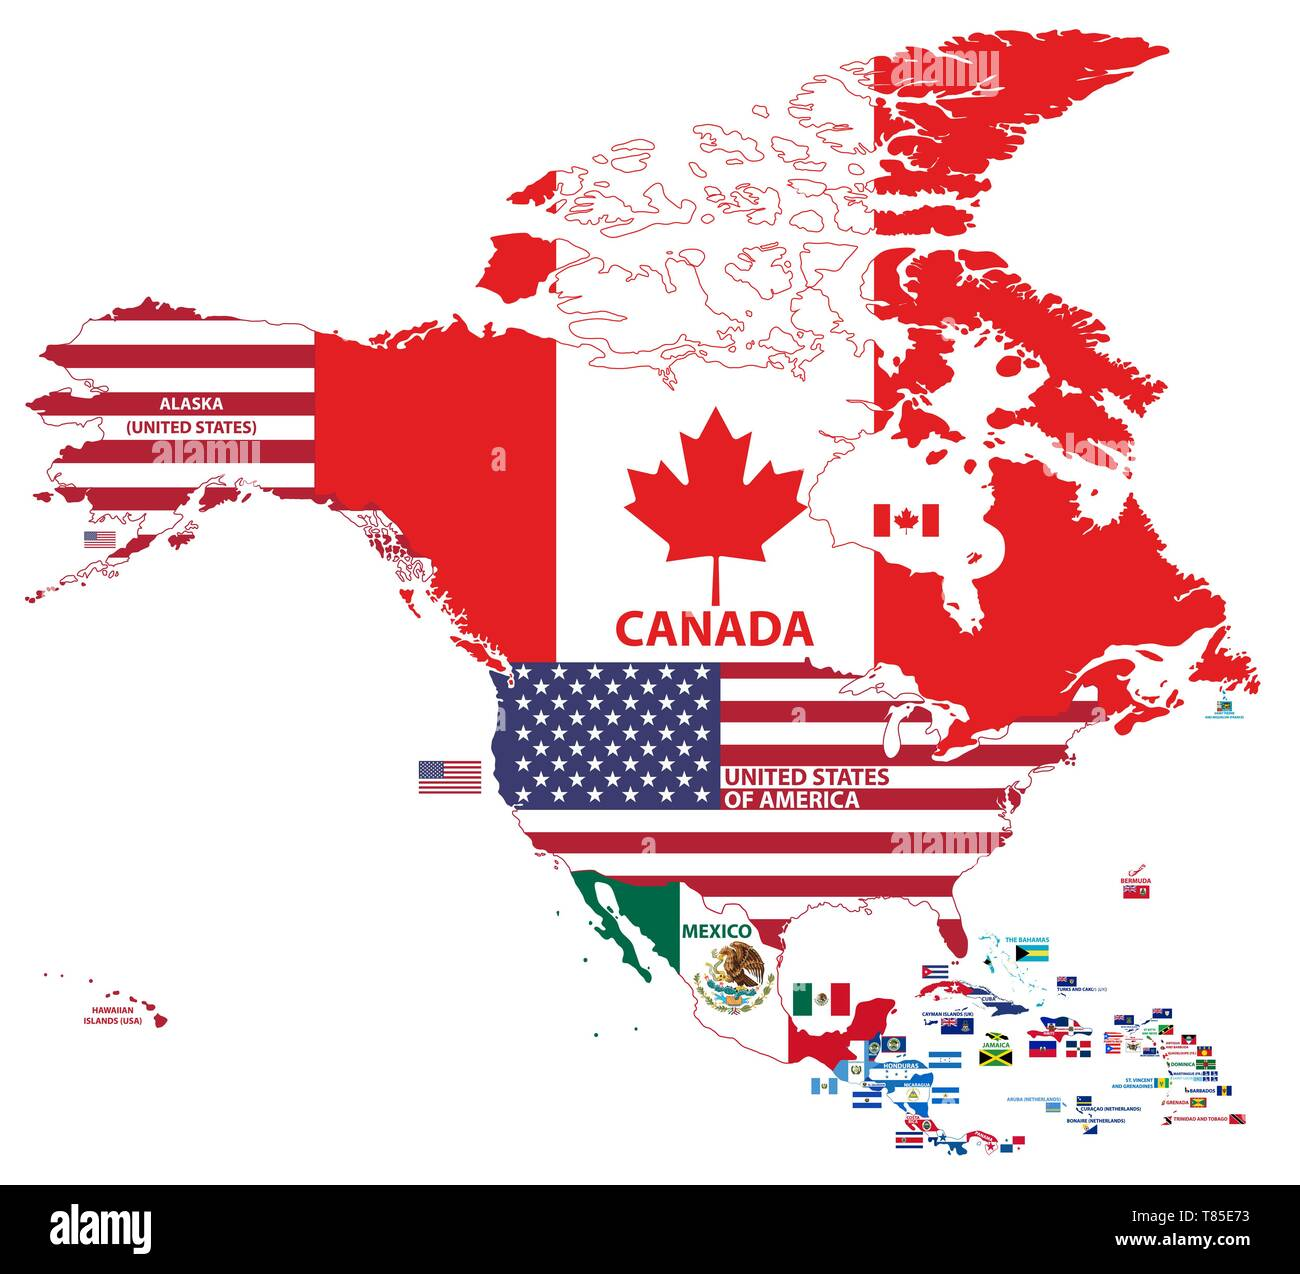 Image of: Vector Illustration Of North America Map Include Northern America Central America And Caribbean Regions With Country Names And Flags Of Countries Stock Vector Image Art Alamy